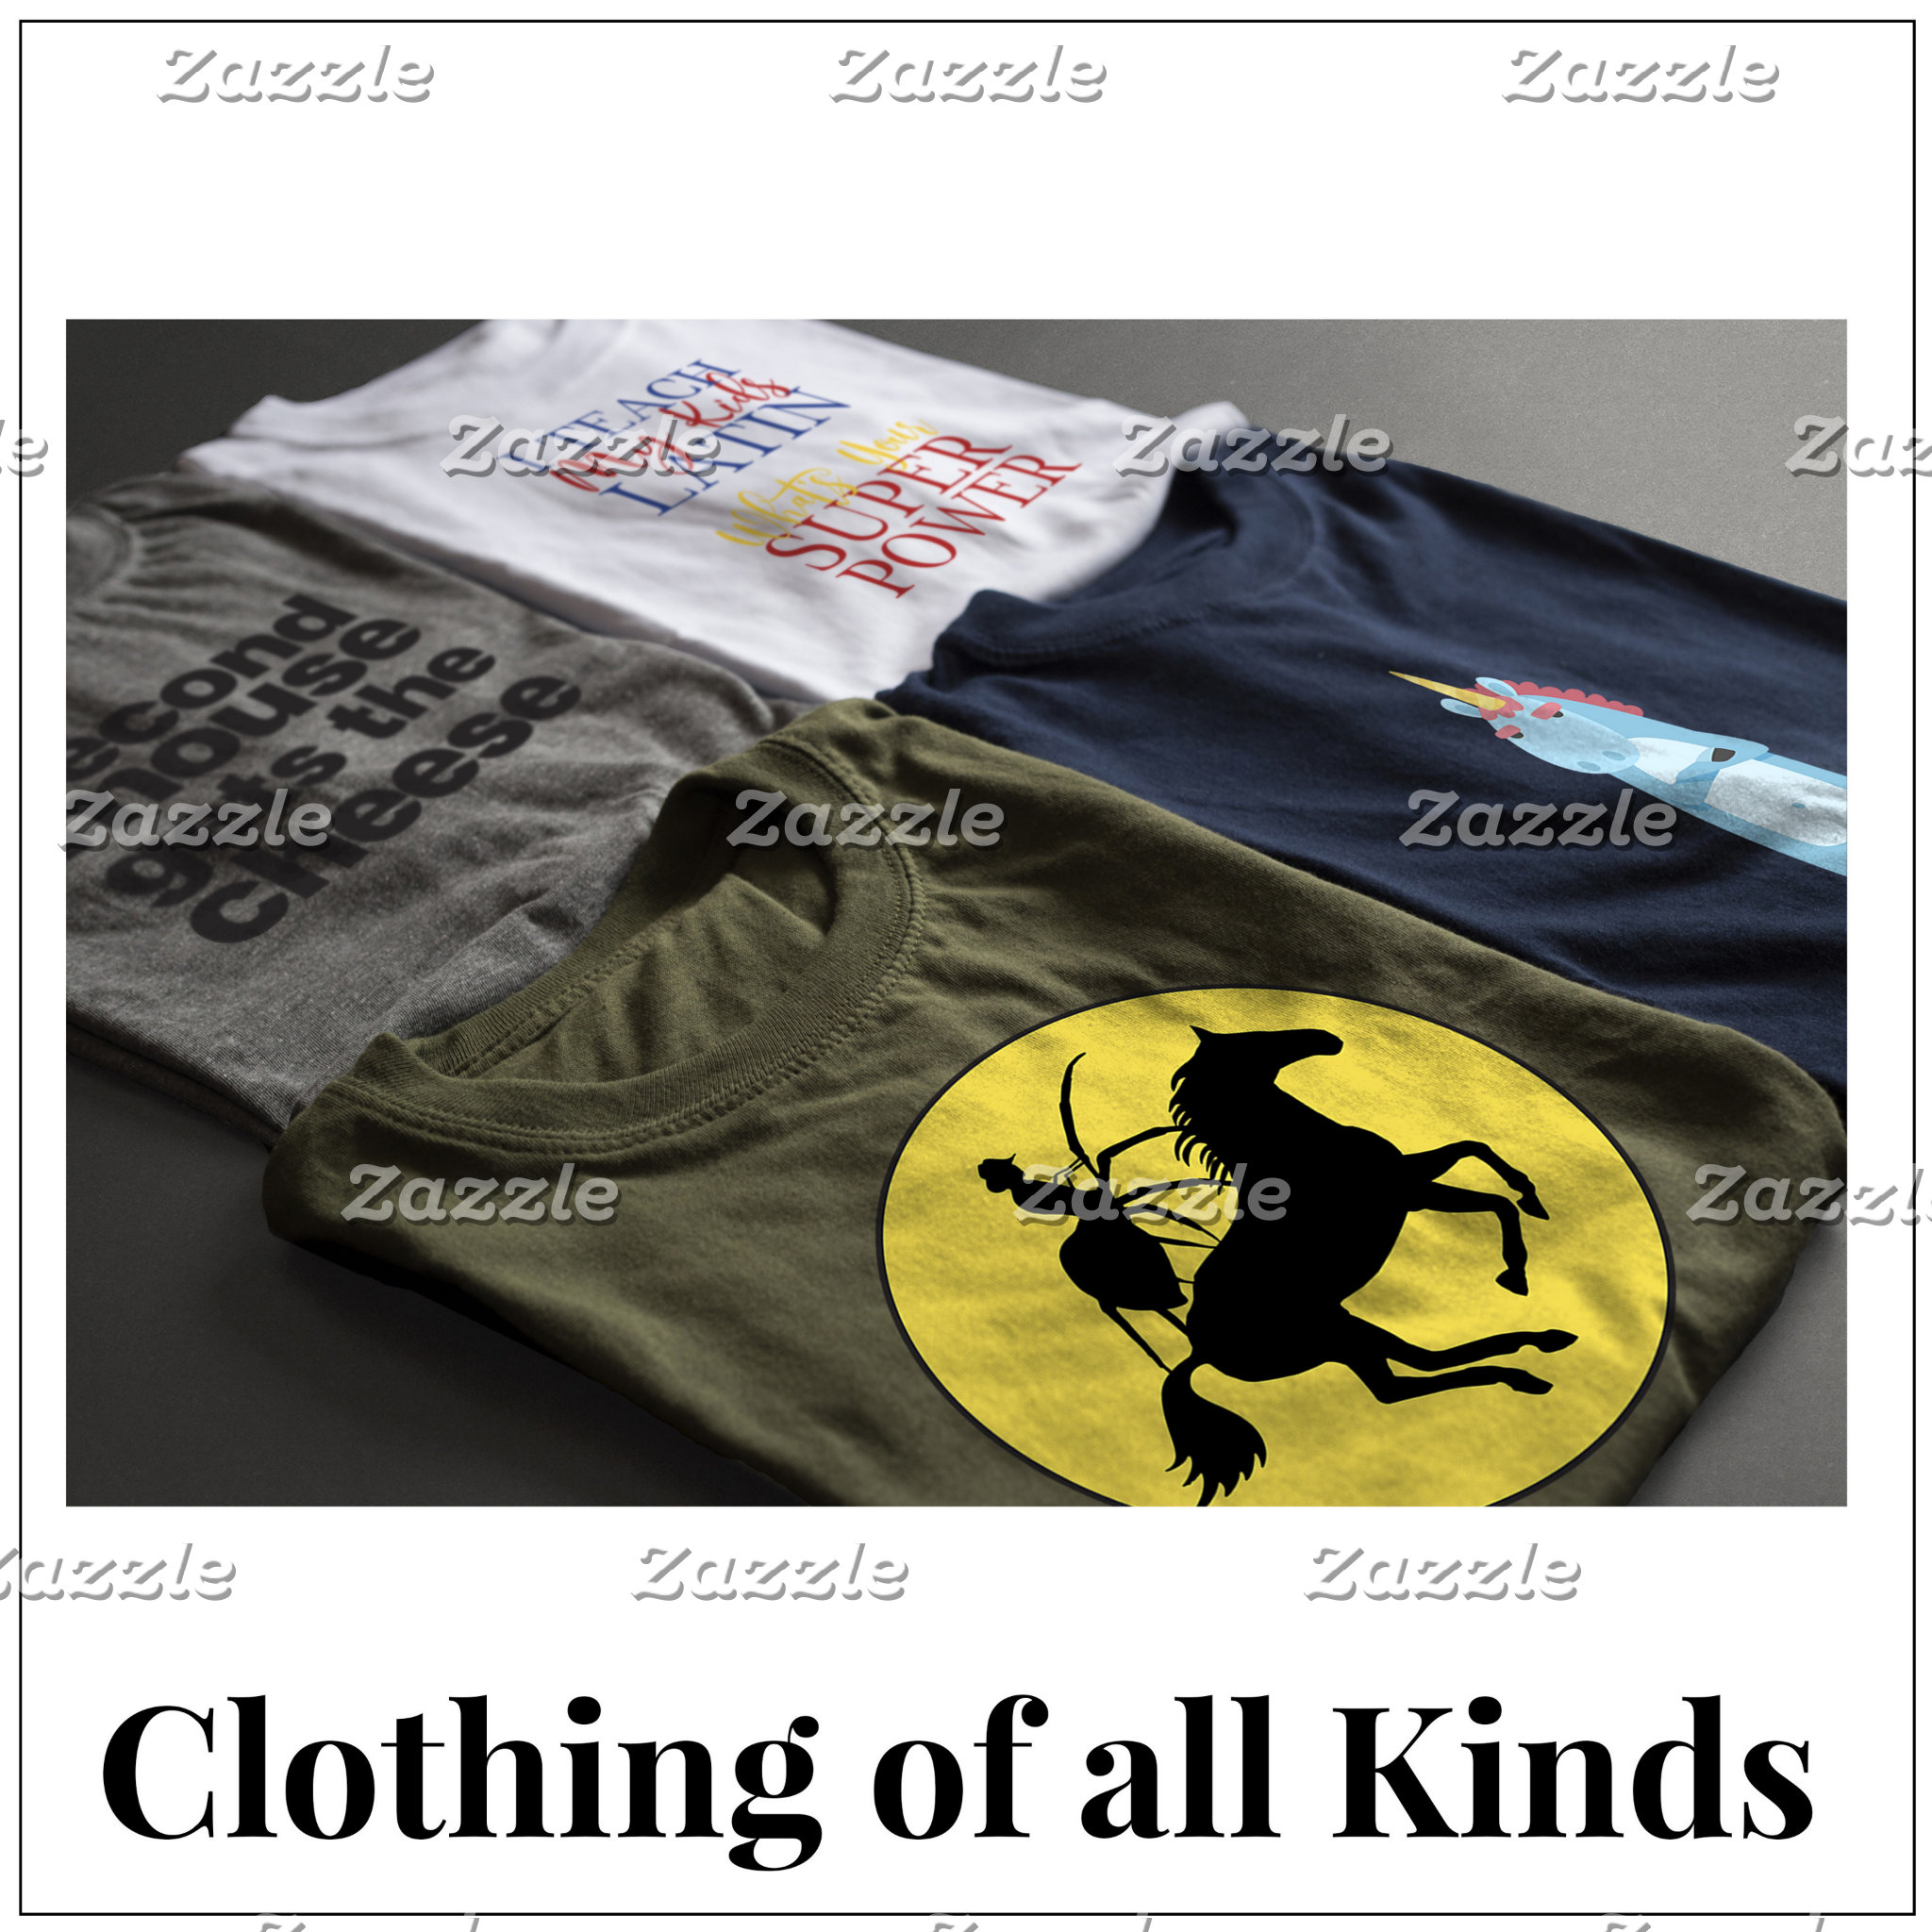 Clothing of all Kinds